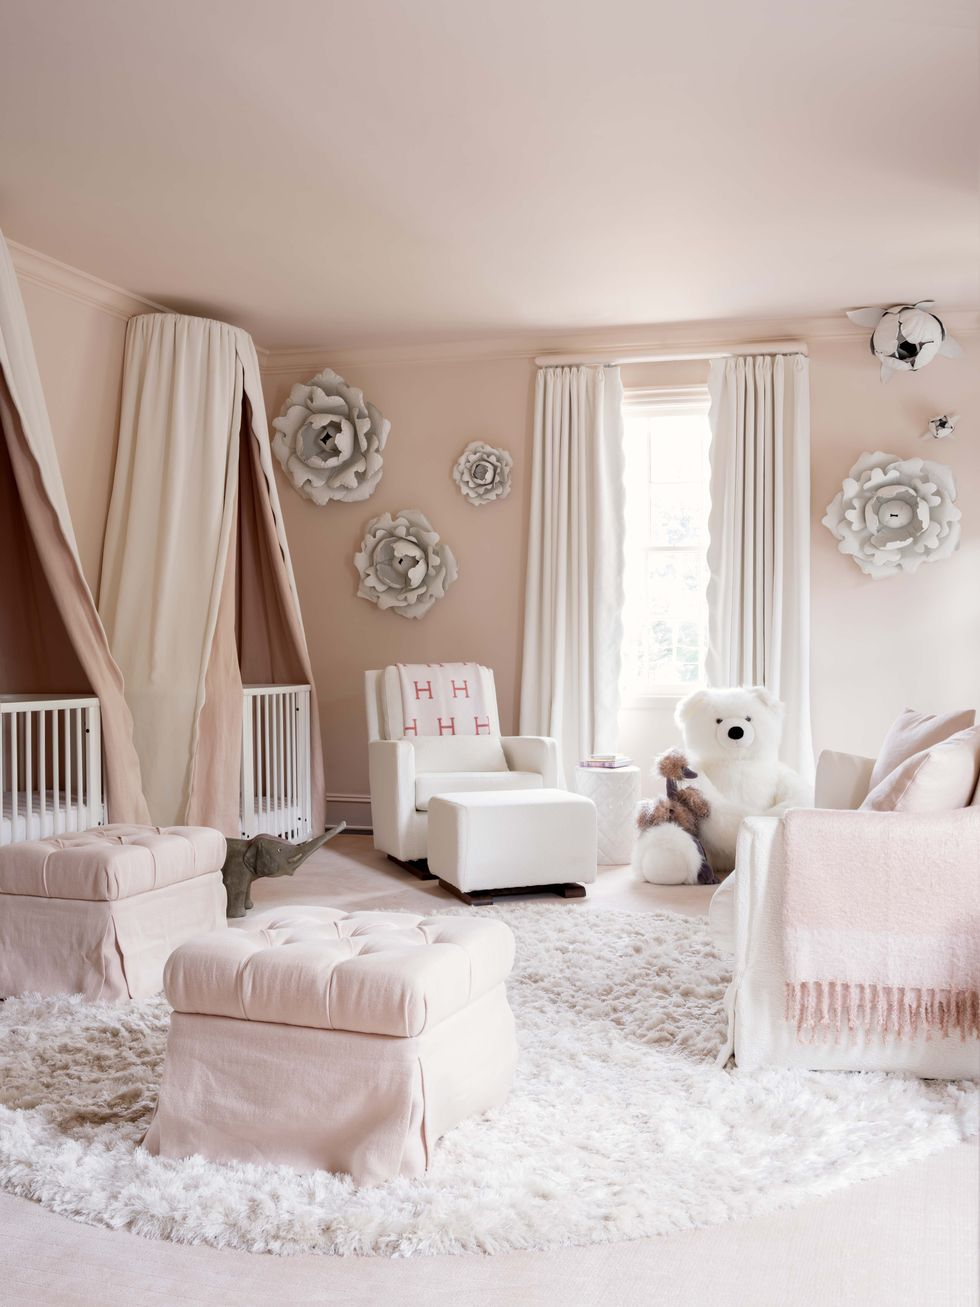 10 Lovely Pink Rooms That Channel Benjamin Moore's 2020